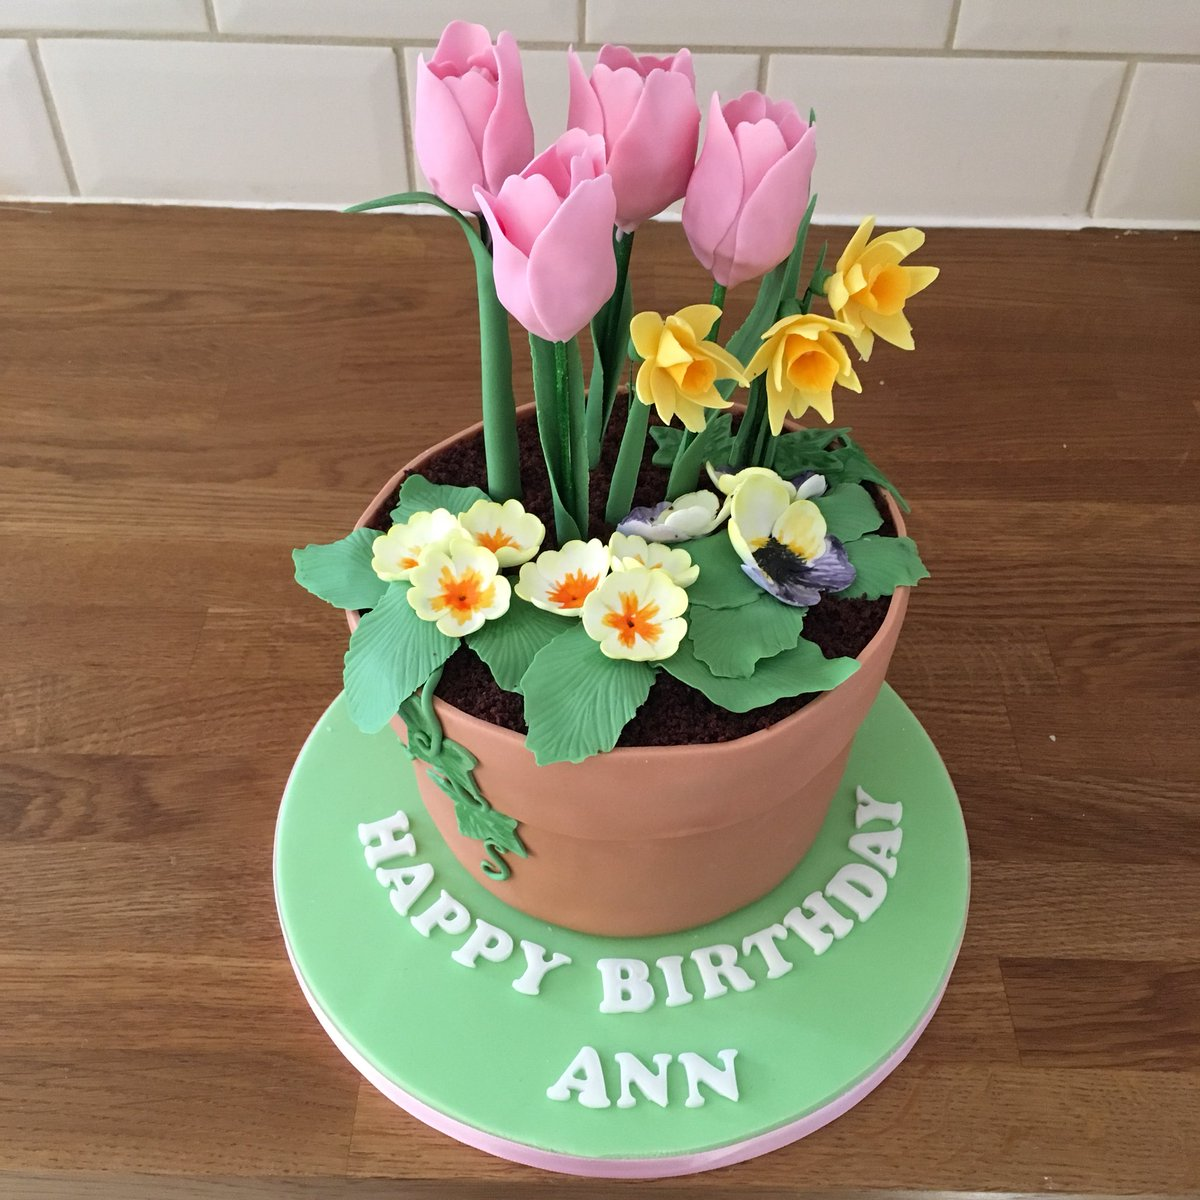 Jades cakes on twitter flower pot cake with cake pop tulips hello jades cakes on twitter flower pot cake with cake pop tulips hello spring spring flowers cake cakepops northenden manchester bakery wiltoncakes mightylinksfo